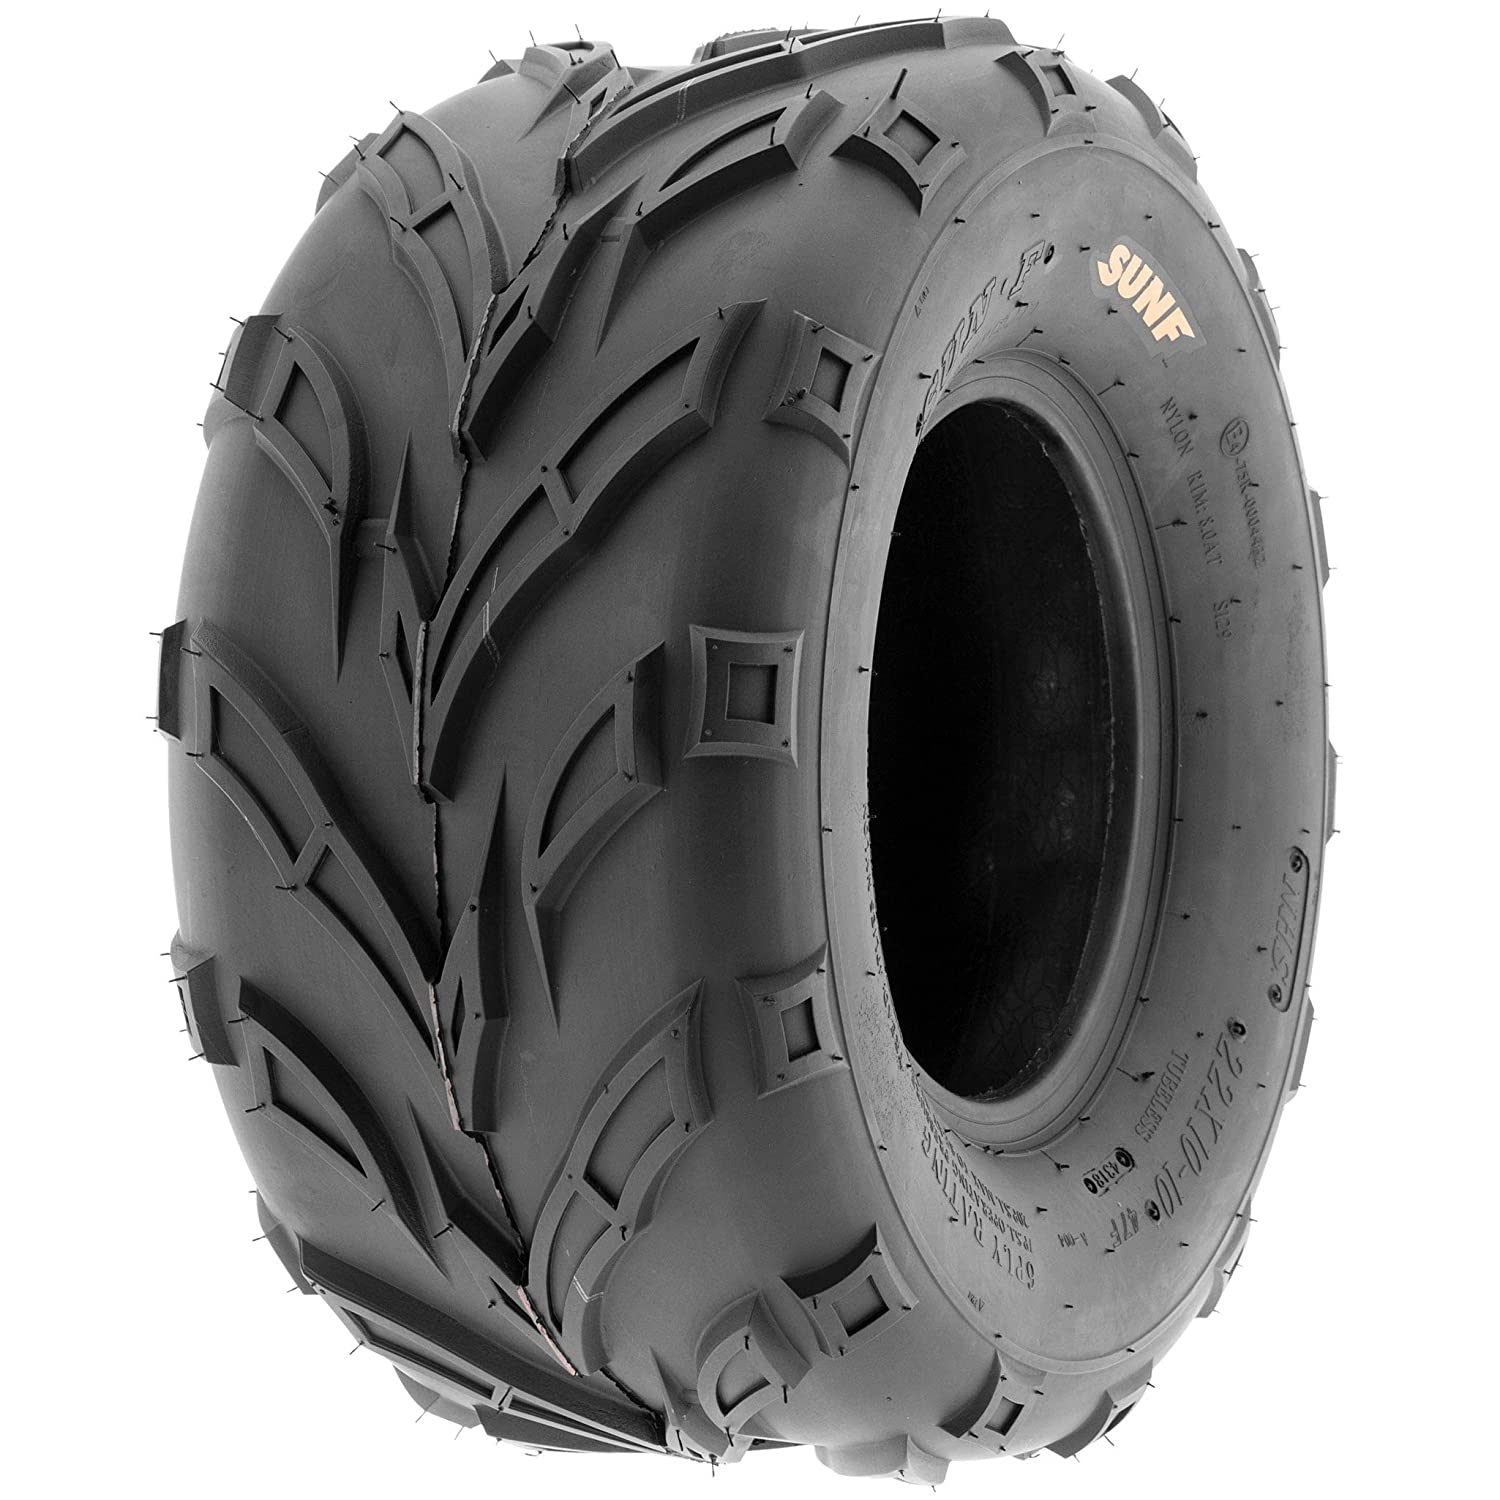 Set of 2 SunF 16x7-8 16x7x8 ATV UTV A//T Sport Trail Replacement 6 PR Tubeless Tires A004,